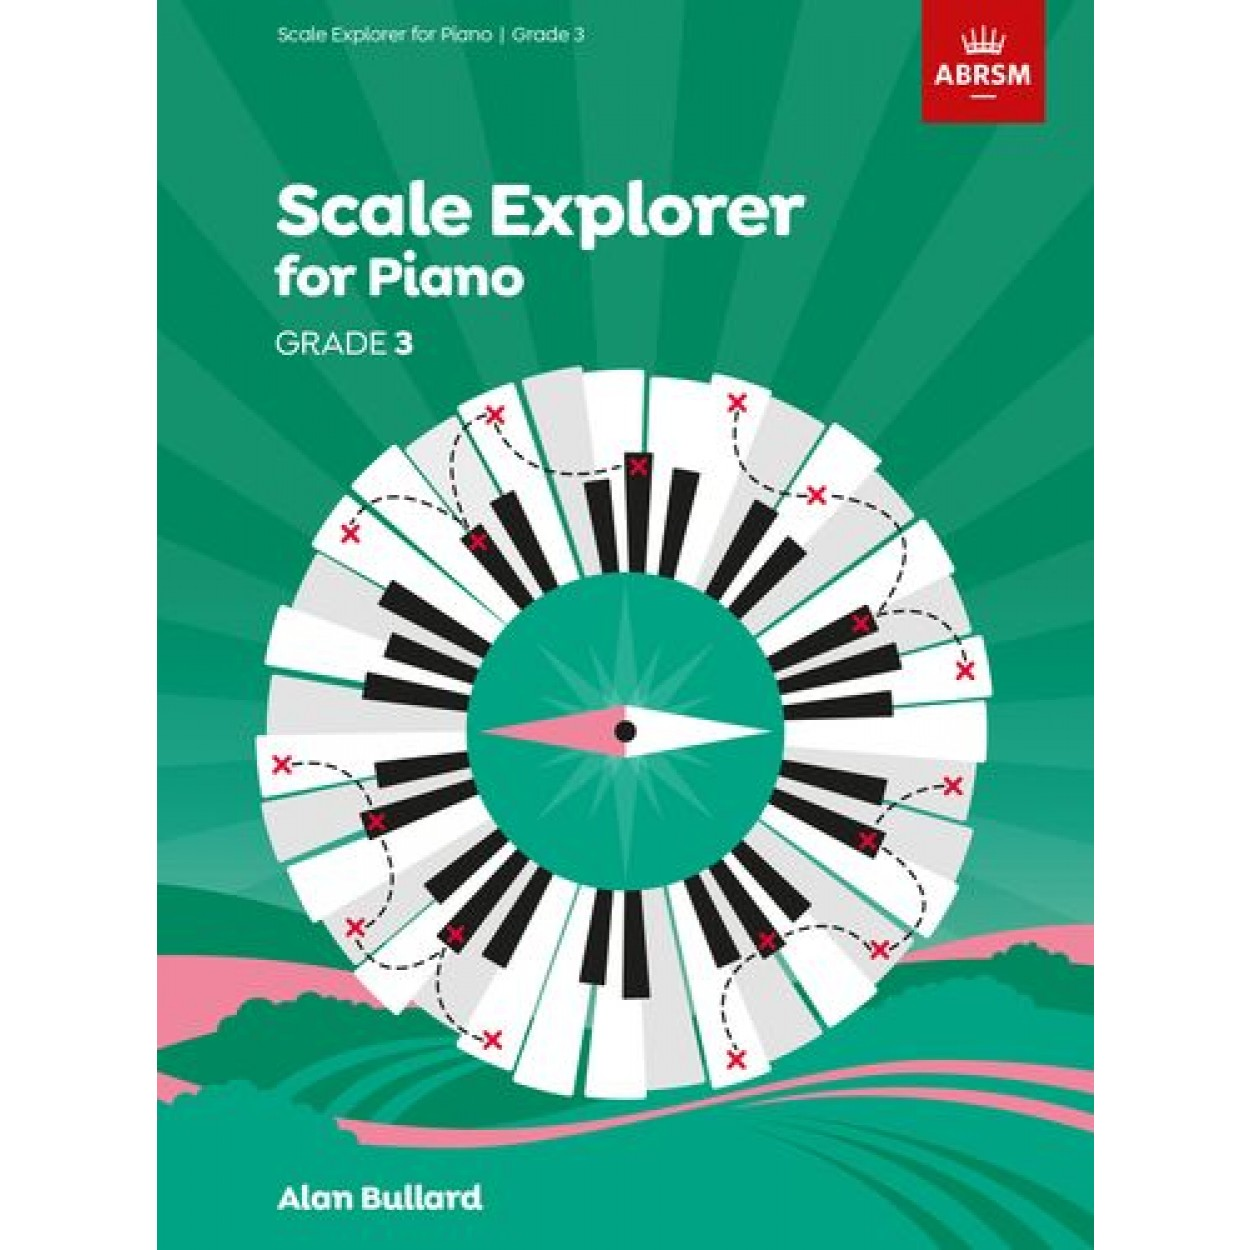 Scale Explorer for Piano Grade 3 available at Penarth Music Centre